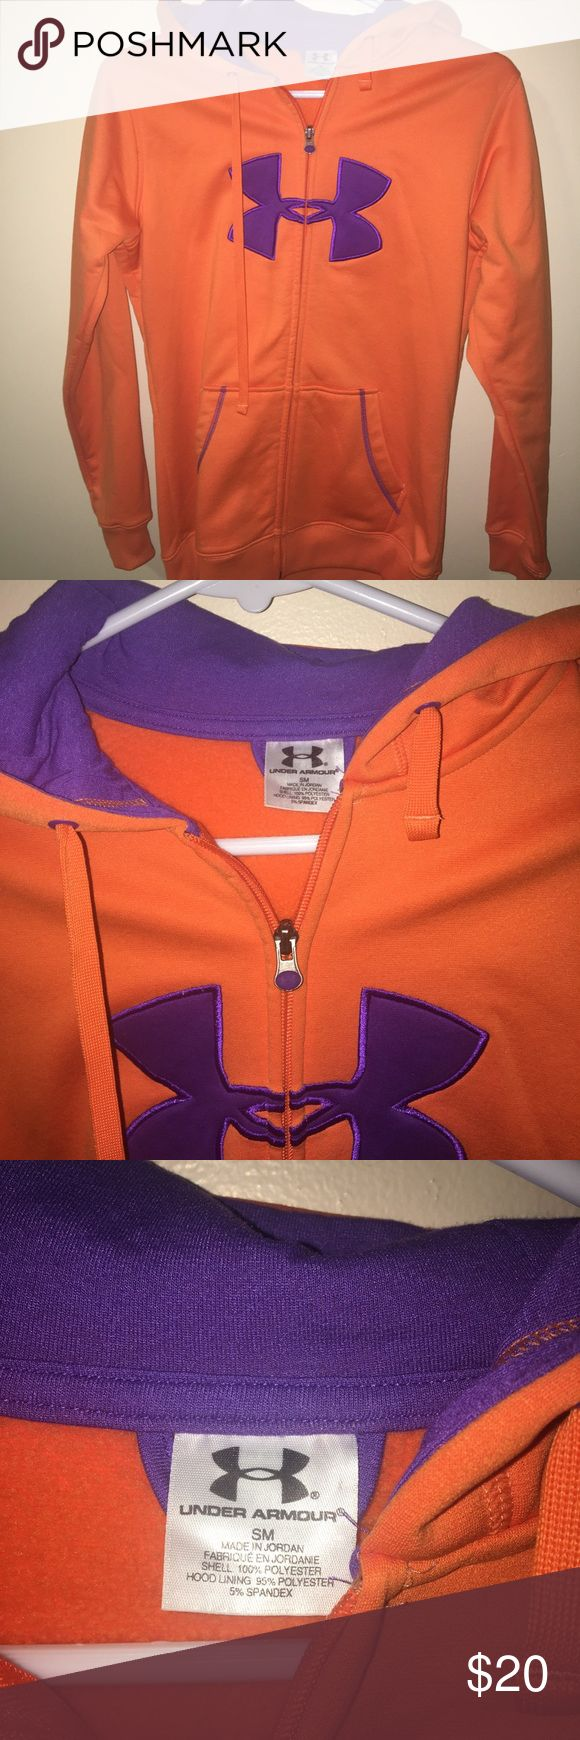 Under Armour Full Zip Up Hoodie Orange Women Small Pre-Owned Under Armour Zip Up Hoodie Women's.  Great for the winter keeps you nice and warm  Orange and purple  Small  Relaxed fit Front kangaroo pockets  100% Polyester  Comes From a Smoke Free Home Under Armour Tops Sweatshirts & Hoodies